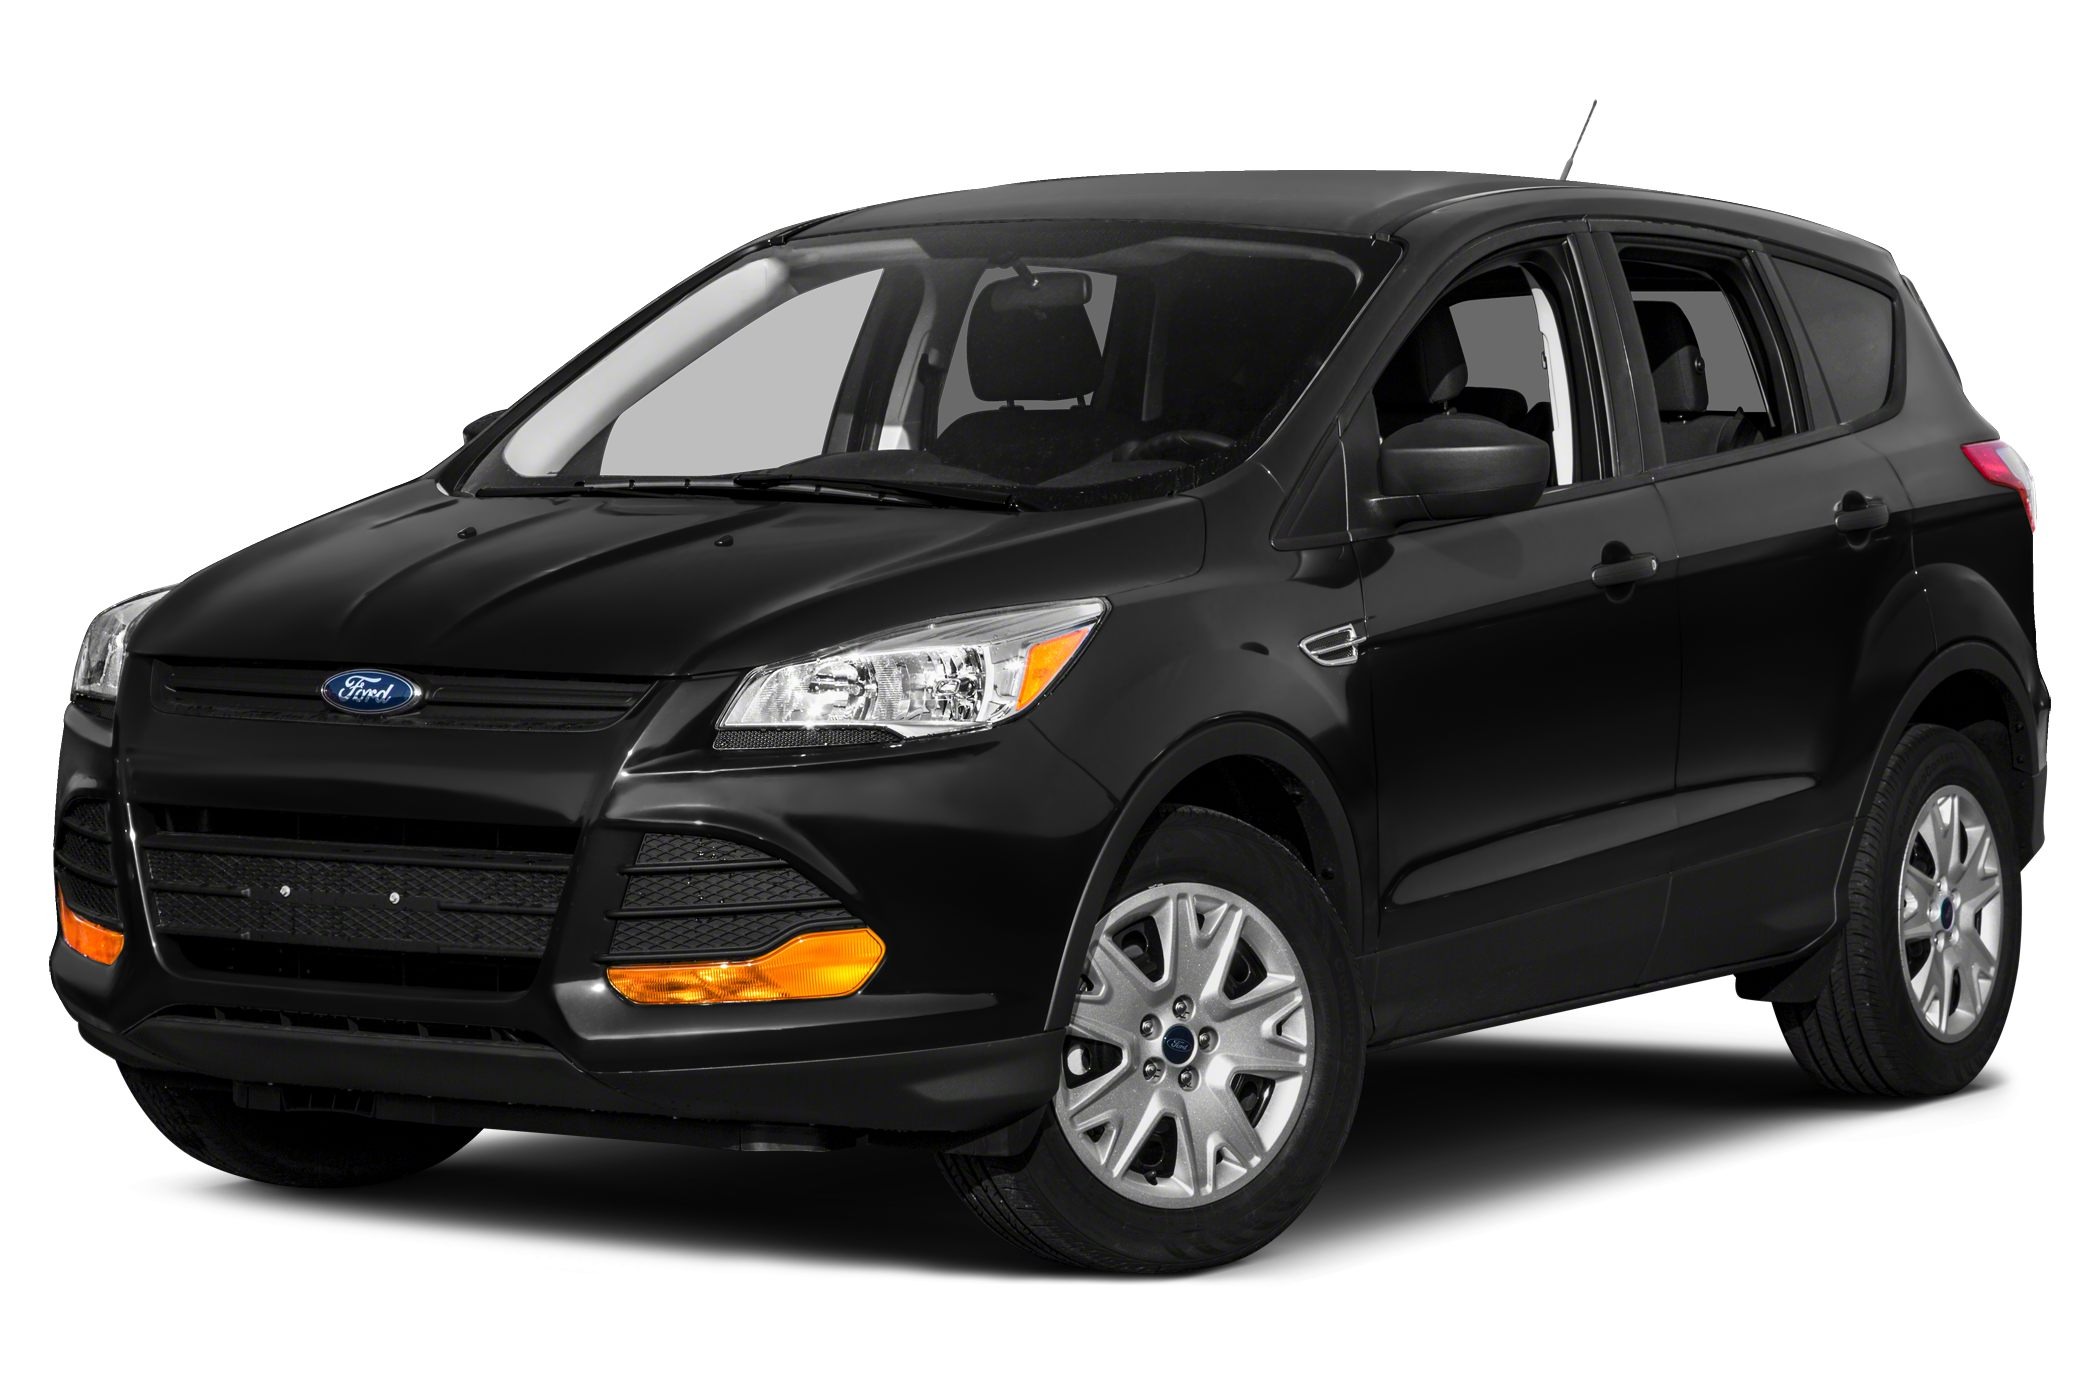 2016 Ford Escape SE Were here to make your shopping experience as pleasant and hassle free as pos